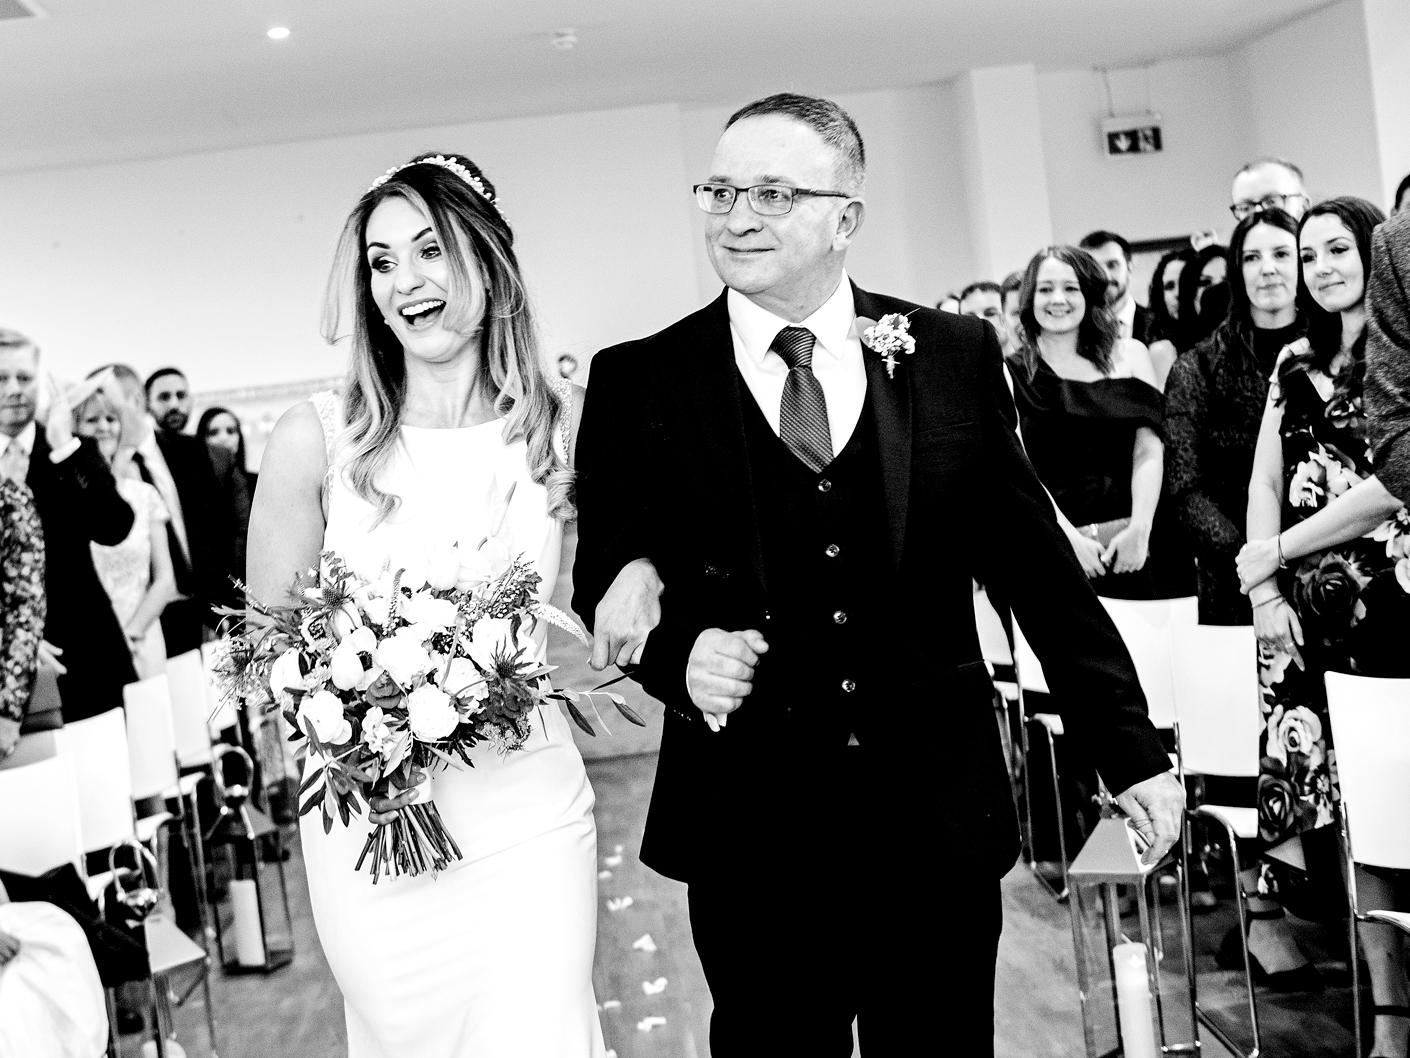 the-wedding-ceremony-at-hope-street-hotel-liverpool-merseyside